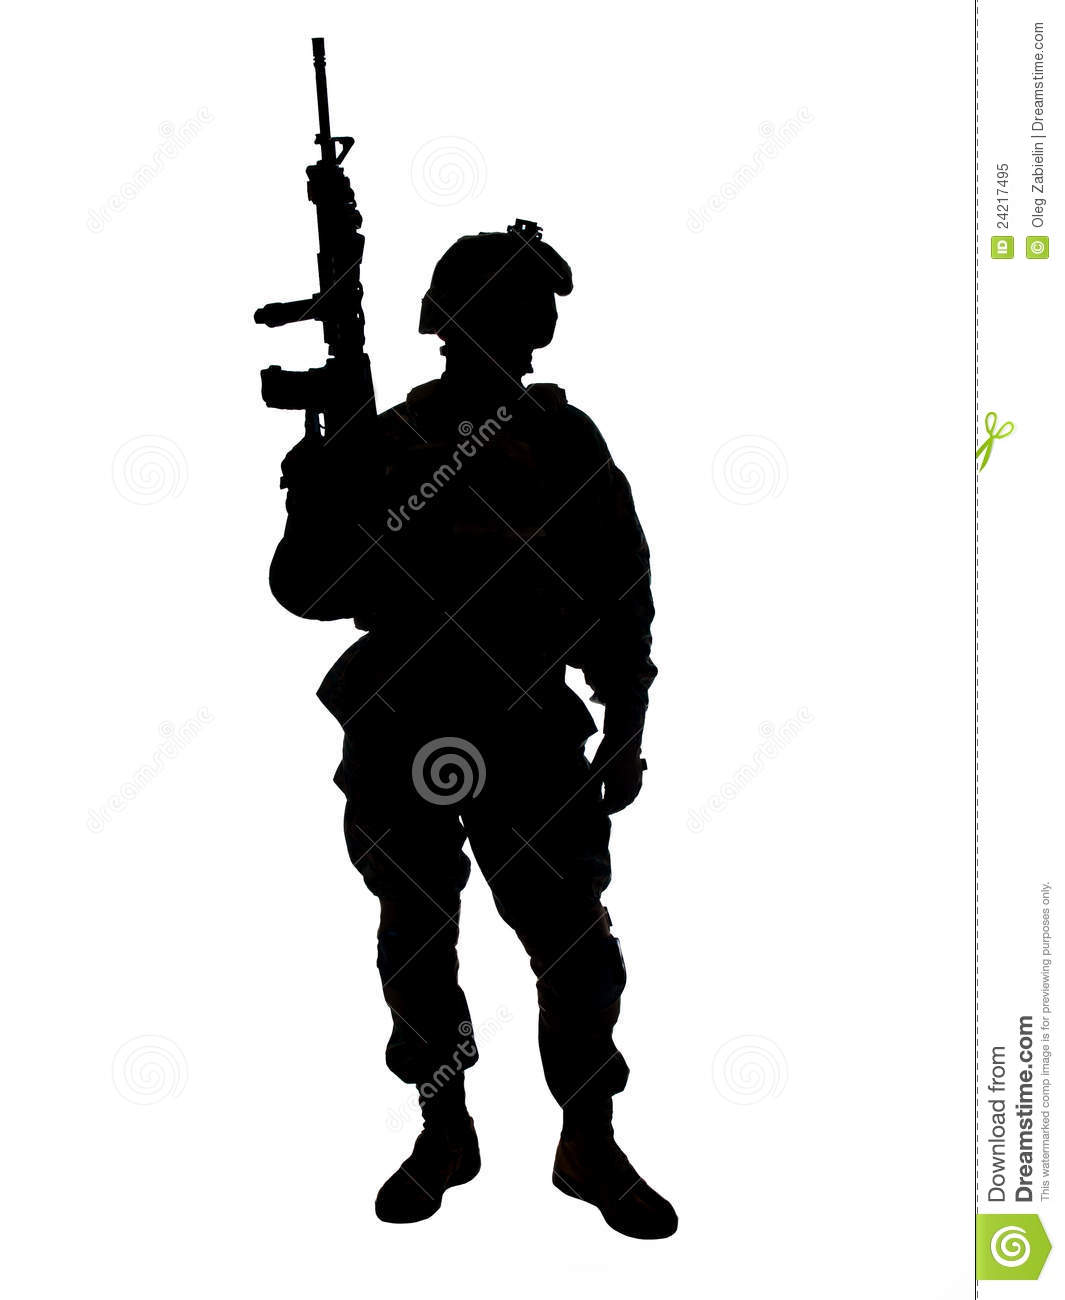 US Soldier Royalty Free Stock Photo - Image: 24217495